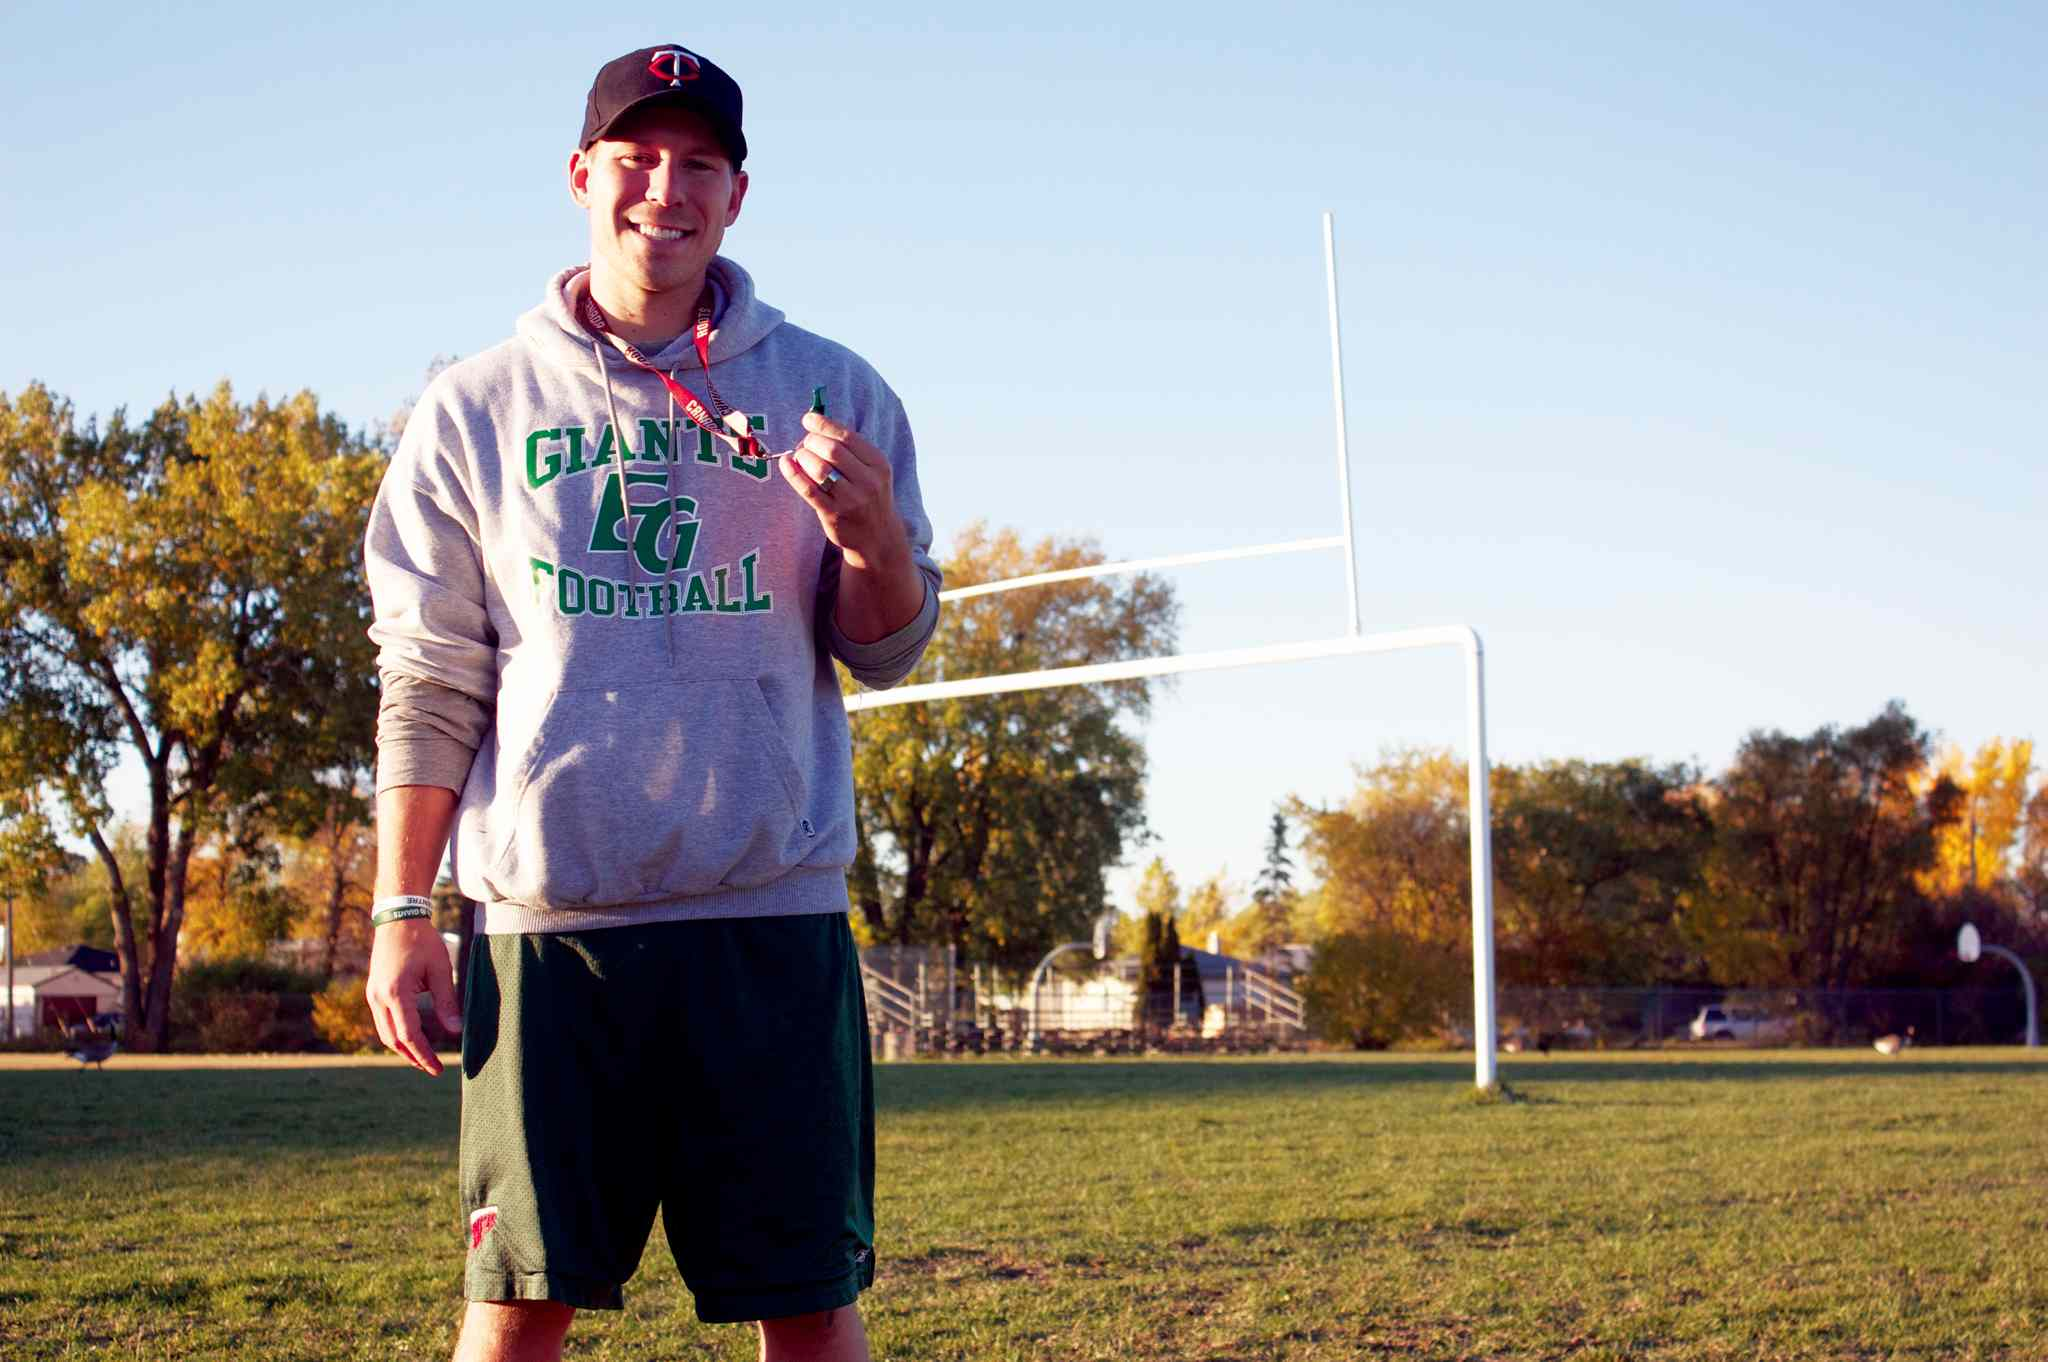 Elmwood Giants defensive co-ordinator Ryan Dueck is fundraising to get a life-changing surgery in Germany.